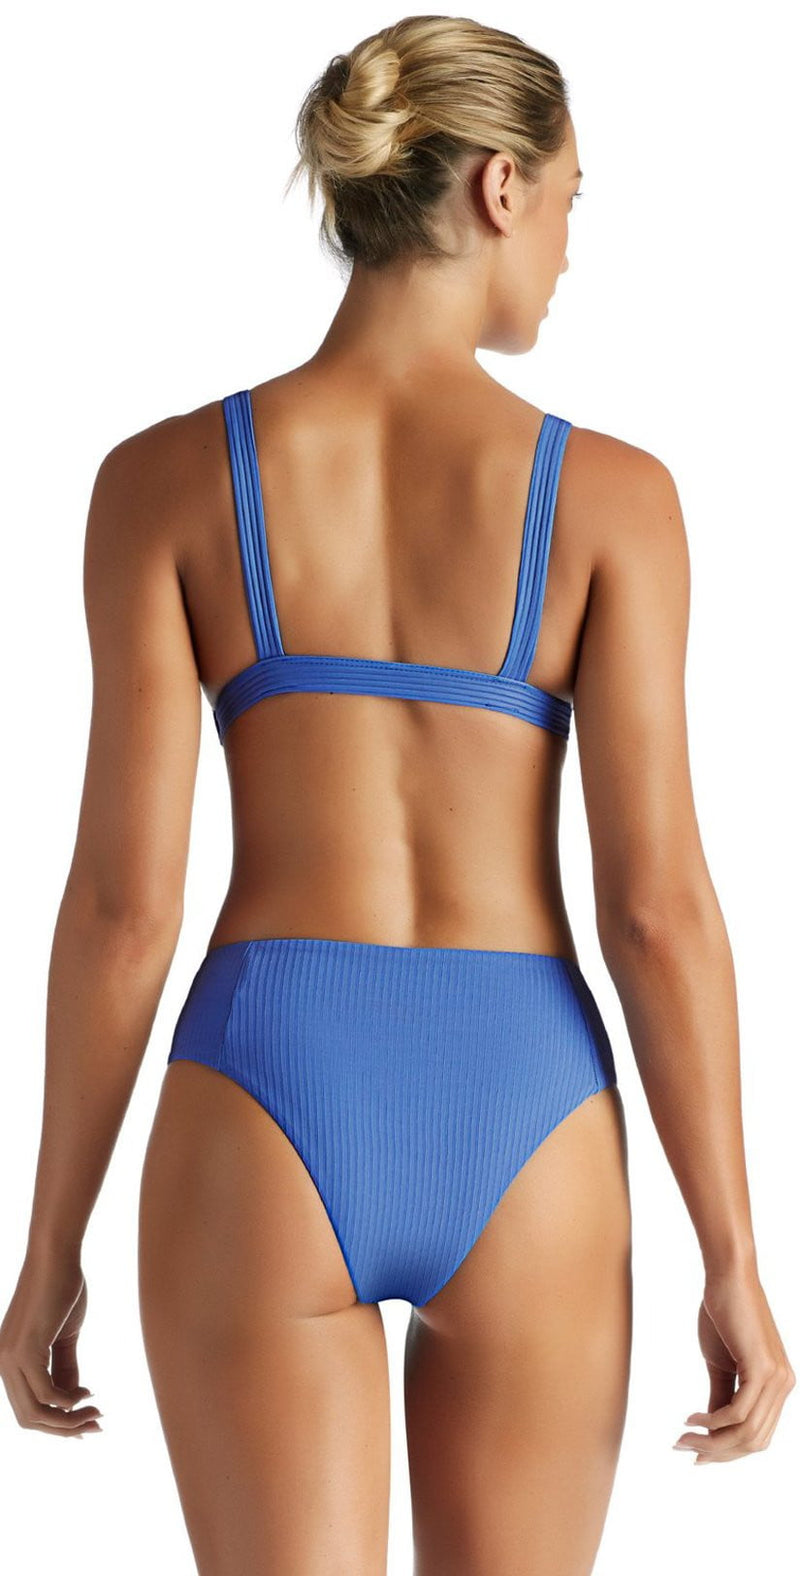 Vitamin A EcoRib Neutra Triangle Top in Beach Blue 805T ERBB: